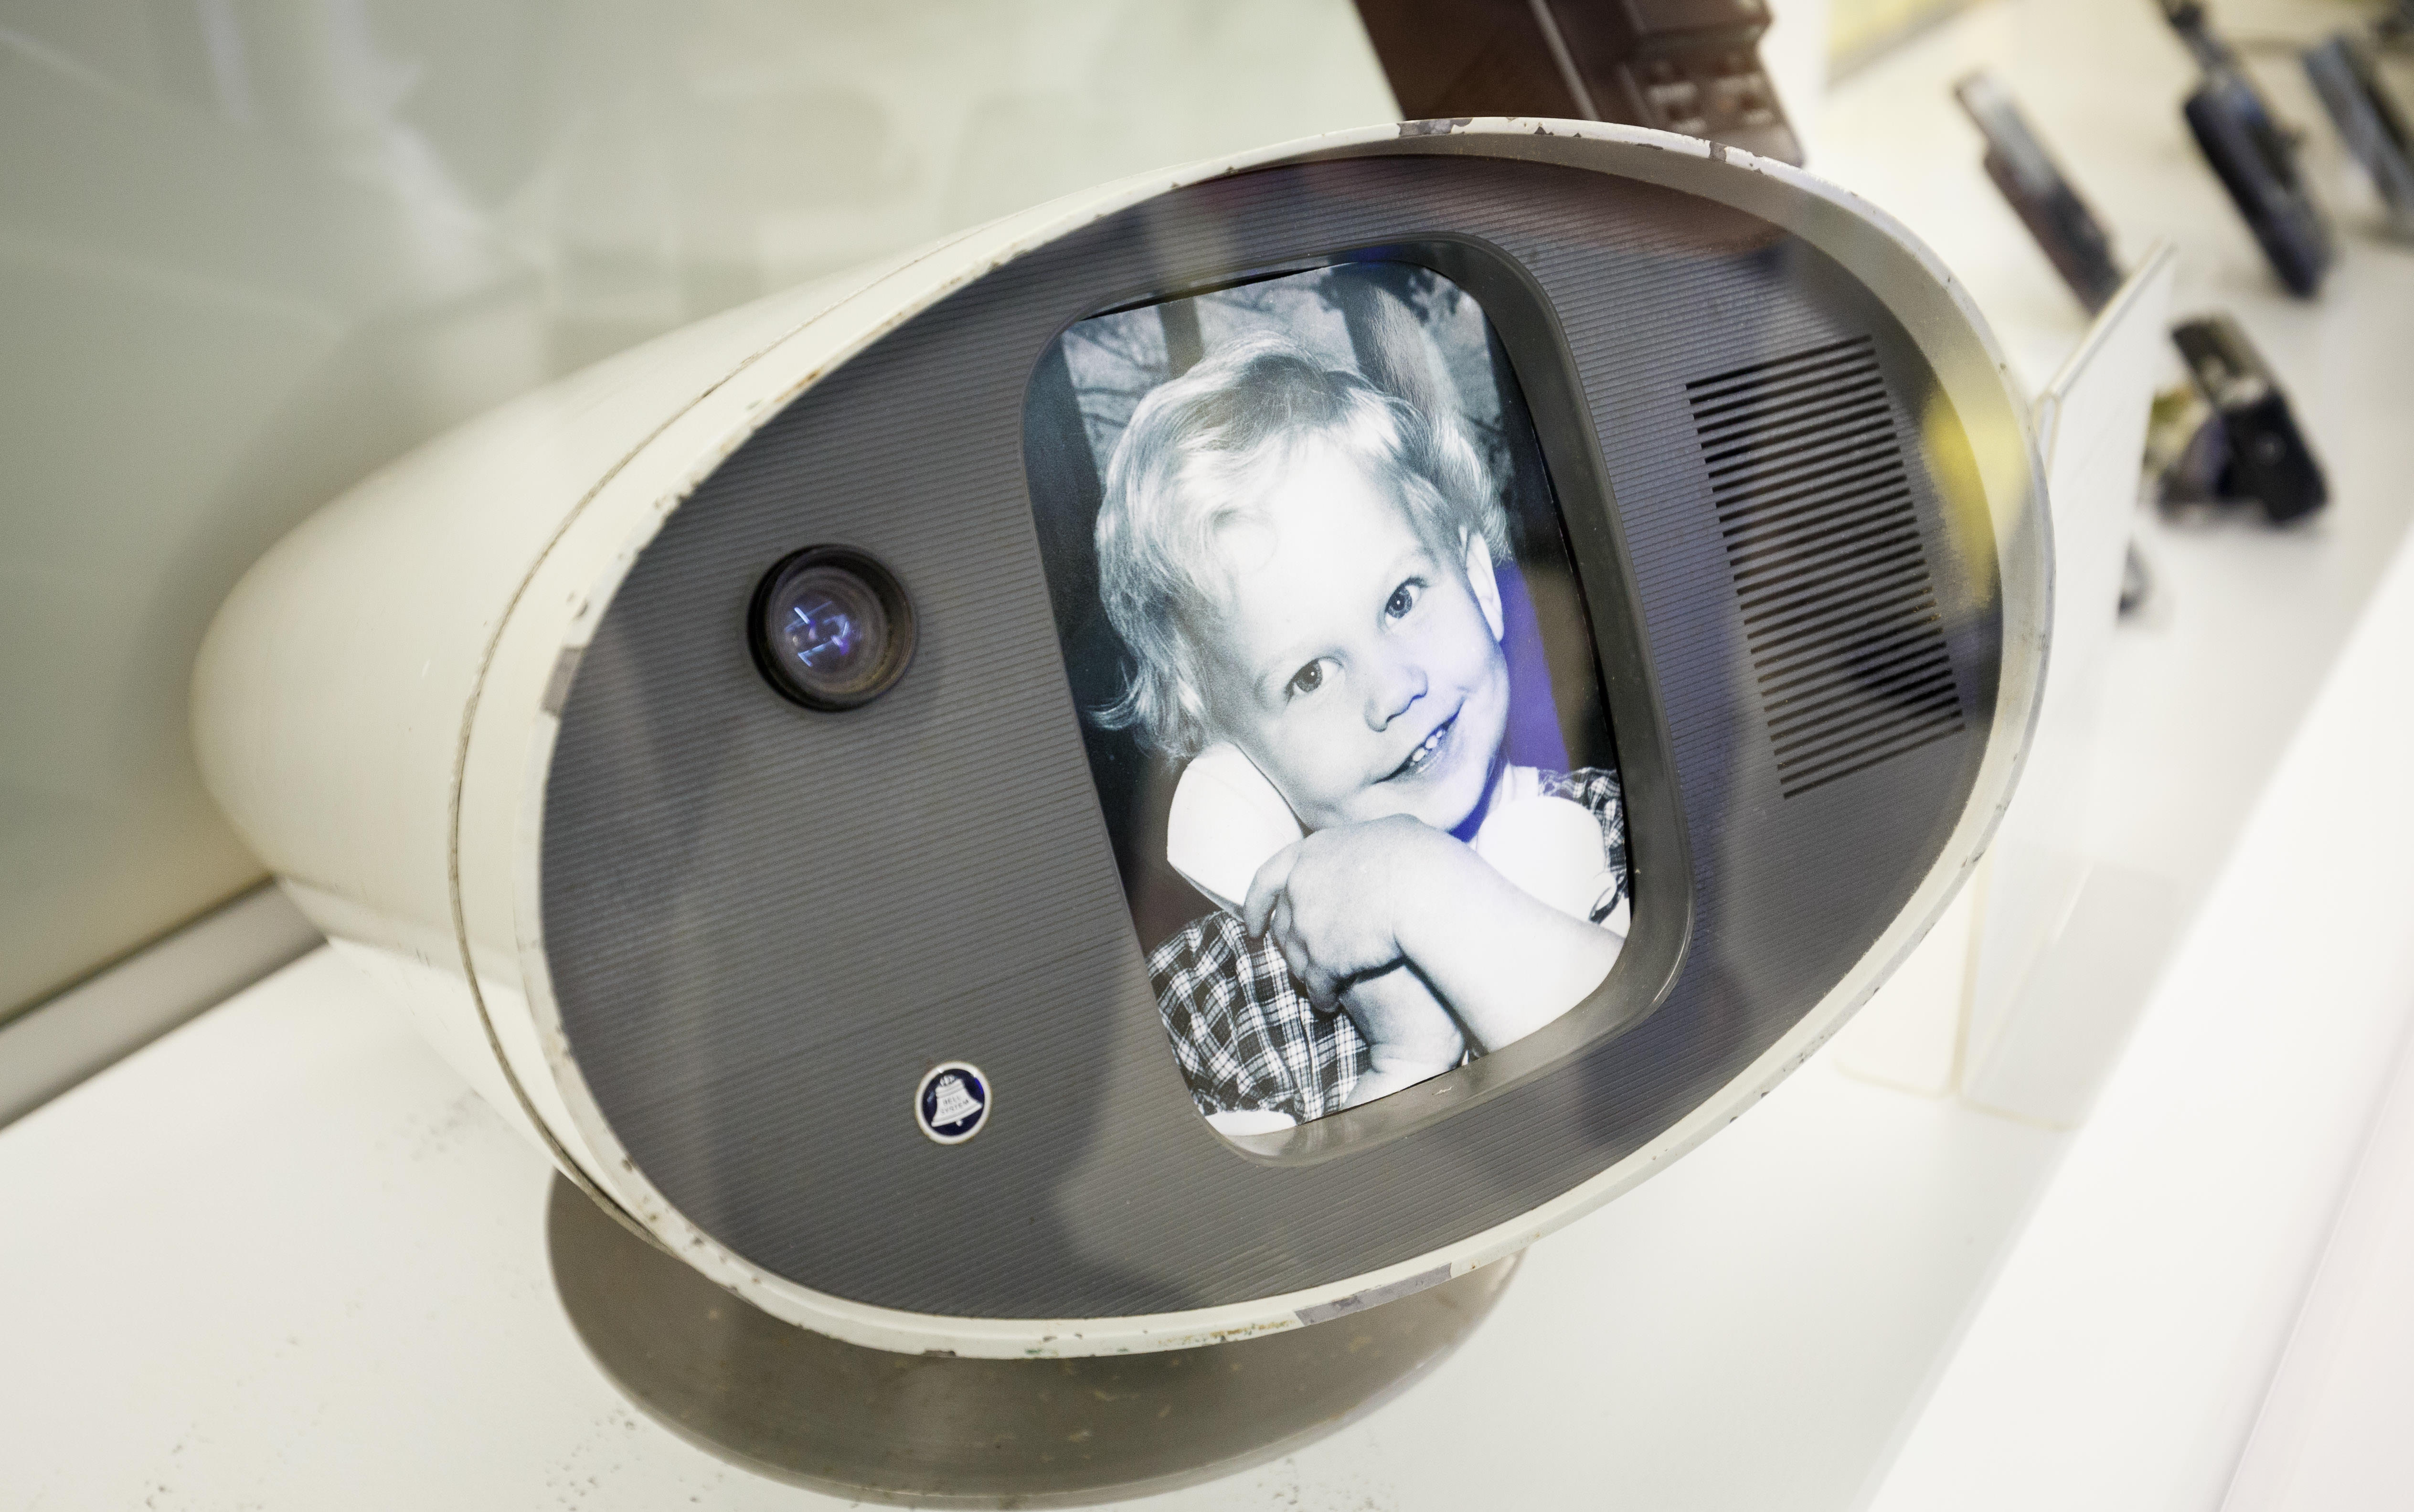 AT&T showed this Model I PicturePhone prototype at the 1964 World's Fair in New York. It's now on display at Nokia's Bell Labs, which inherited the famous AT&T R&D center through acquisitions.